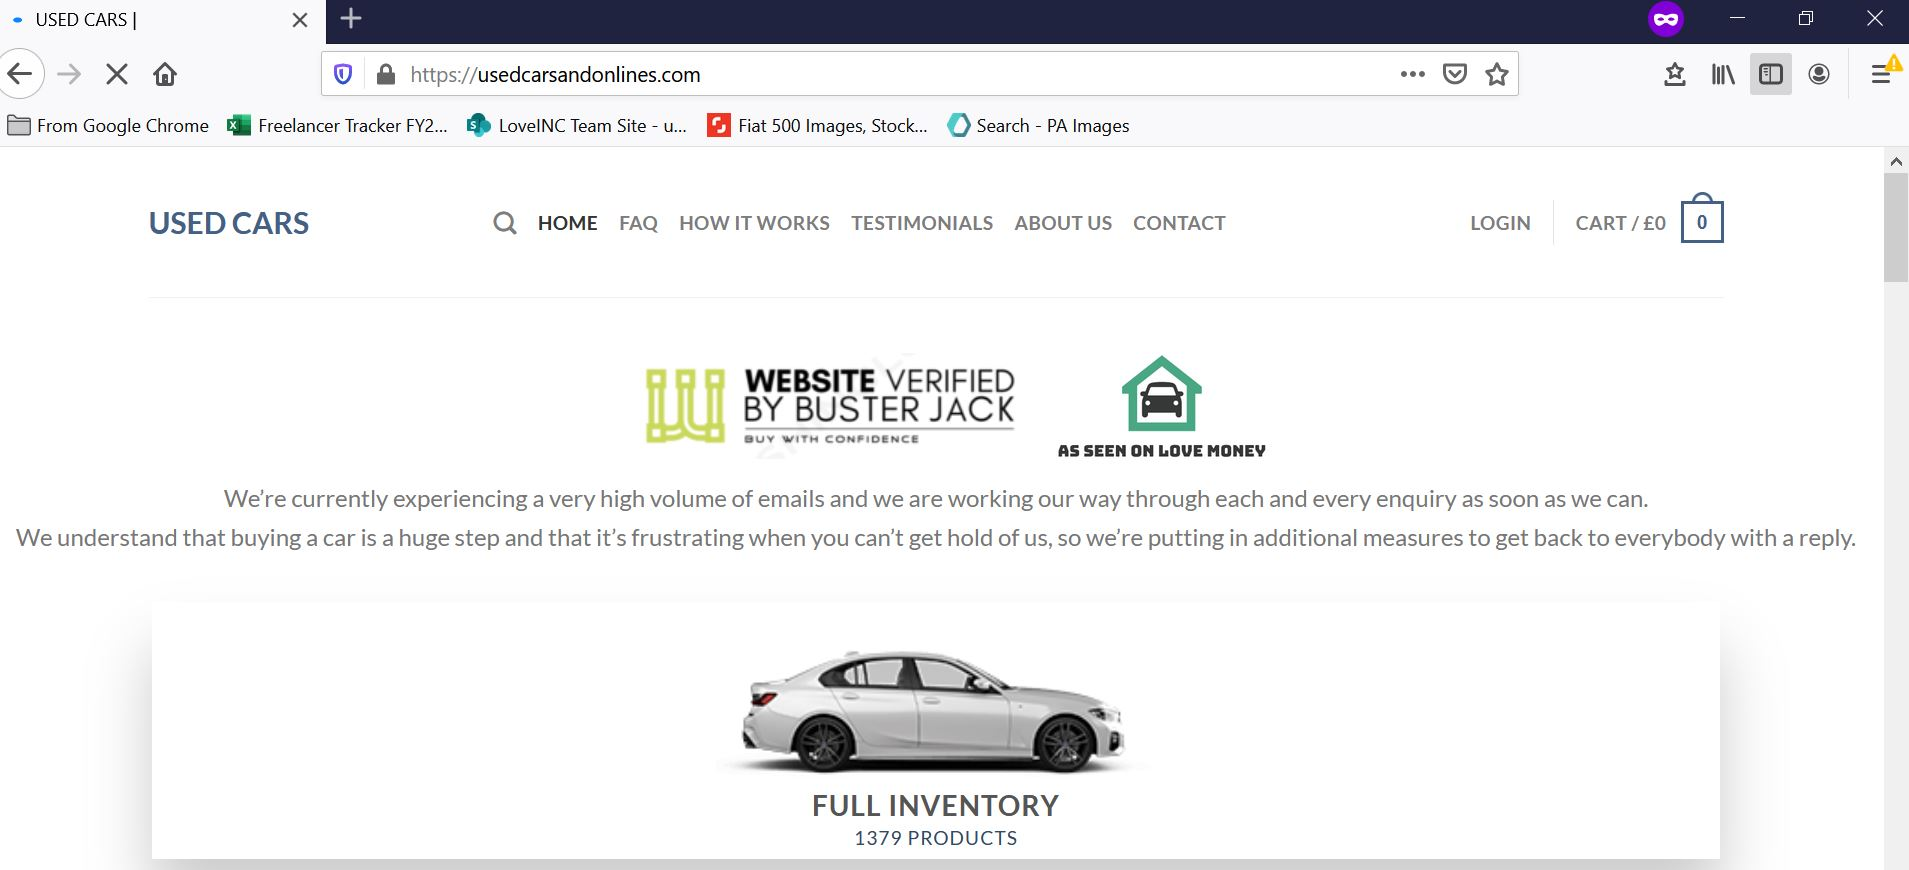 Used cars scam website falsely mentioning loveMONEY endorsement (Image: loveMONEY)